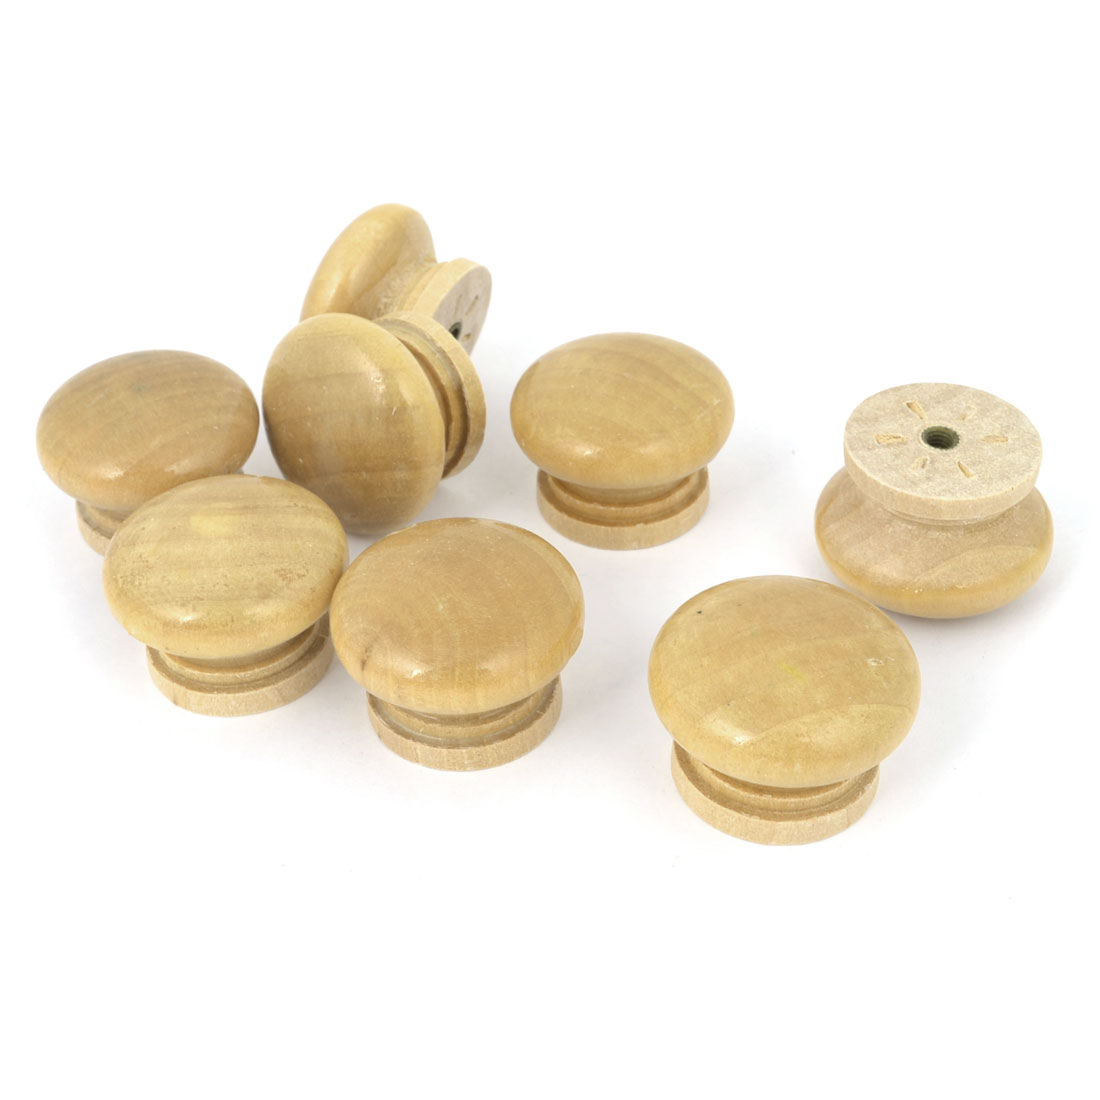 "Universal Replacement 1.3"" Dia Handgrip Wood Drawer Knobs 8Pcs"